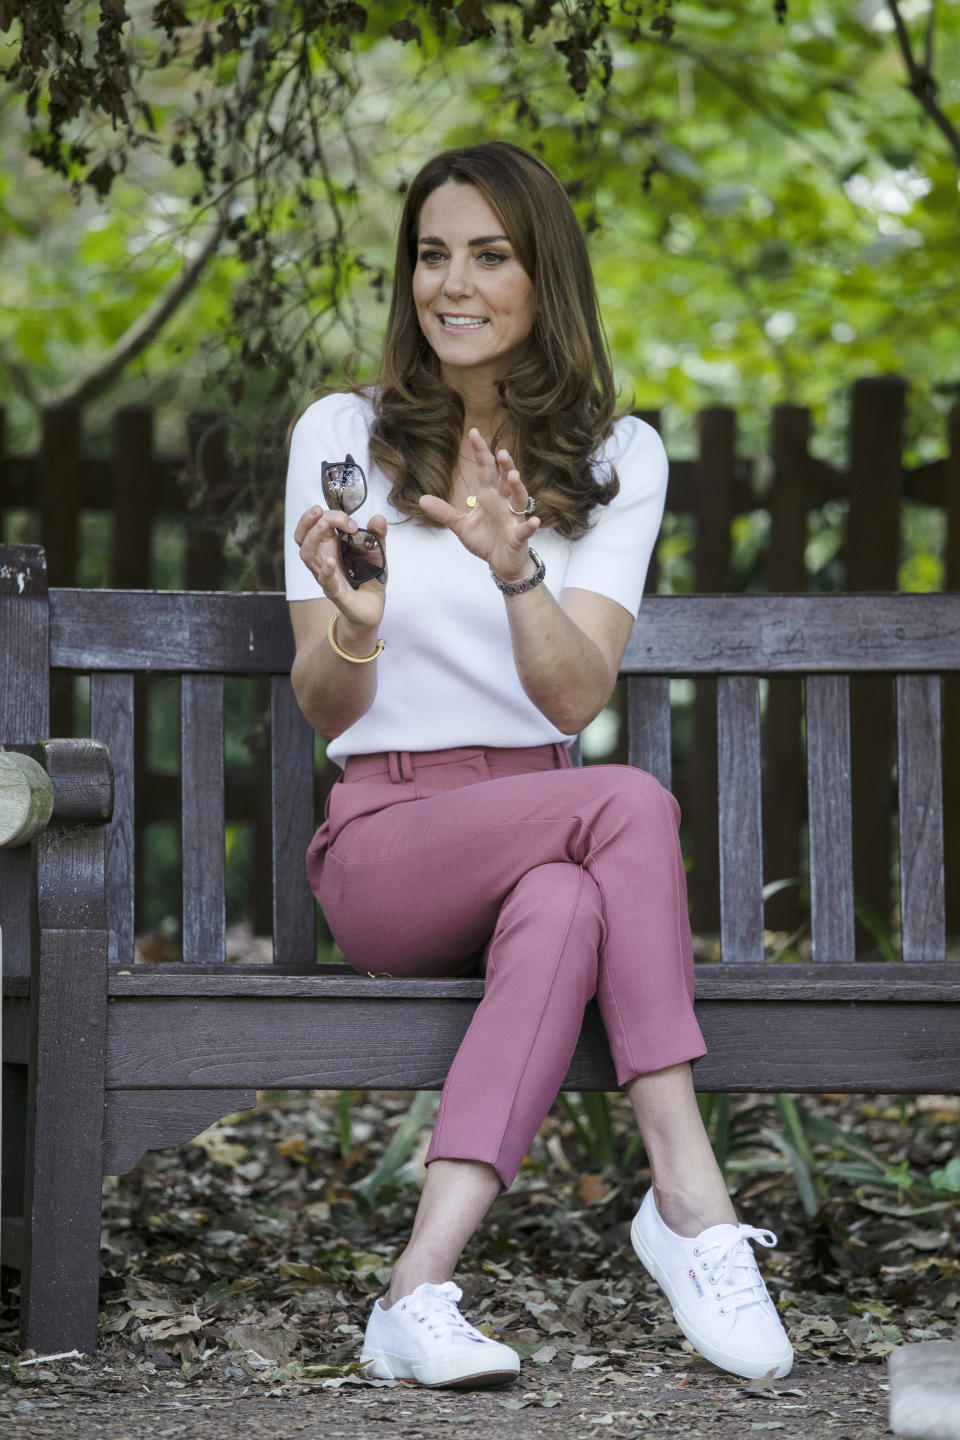 The Duchess of Cambridge looked stylish and chic when she wore her Superga trainers, with pink tailored trousers, when she met with parents in Battersea Park in September 2020. (Getty Images)